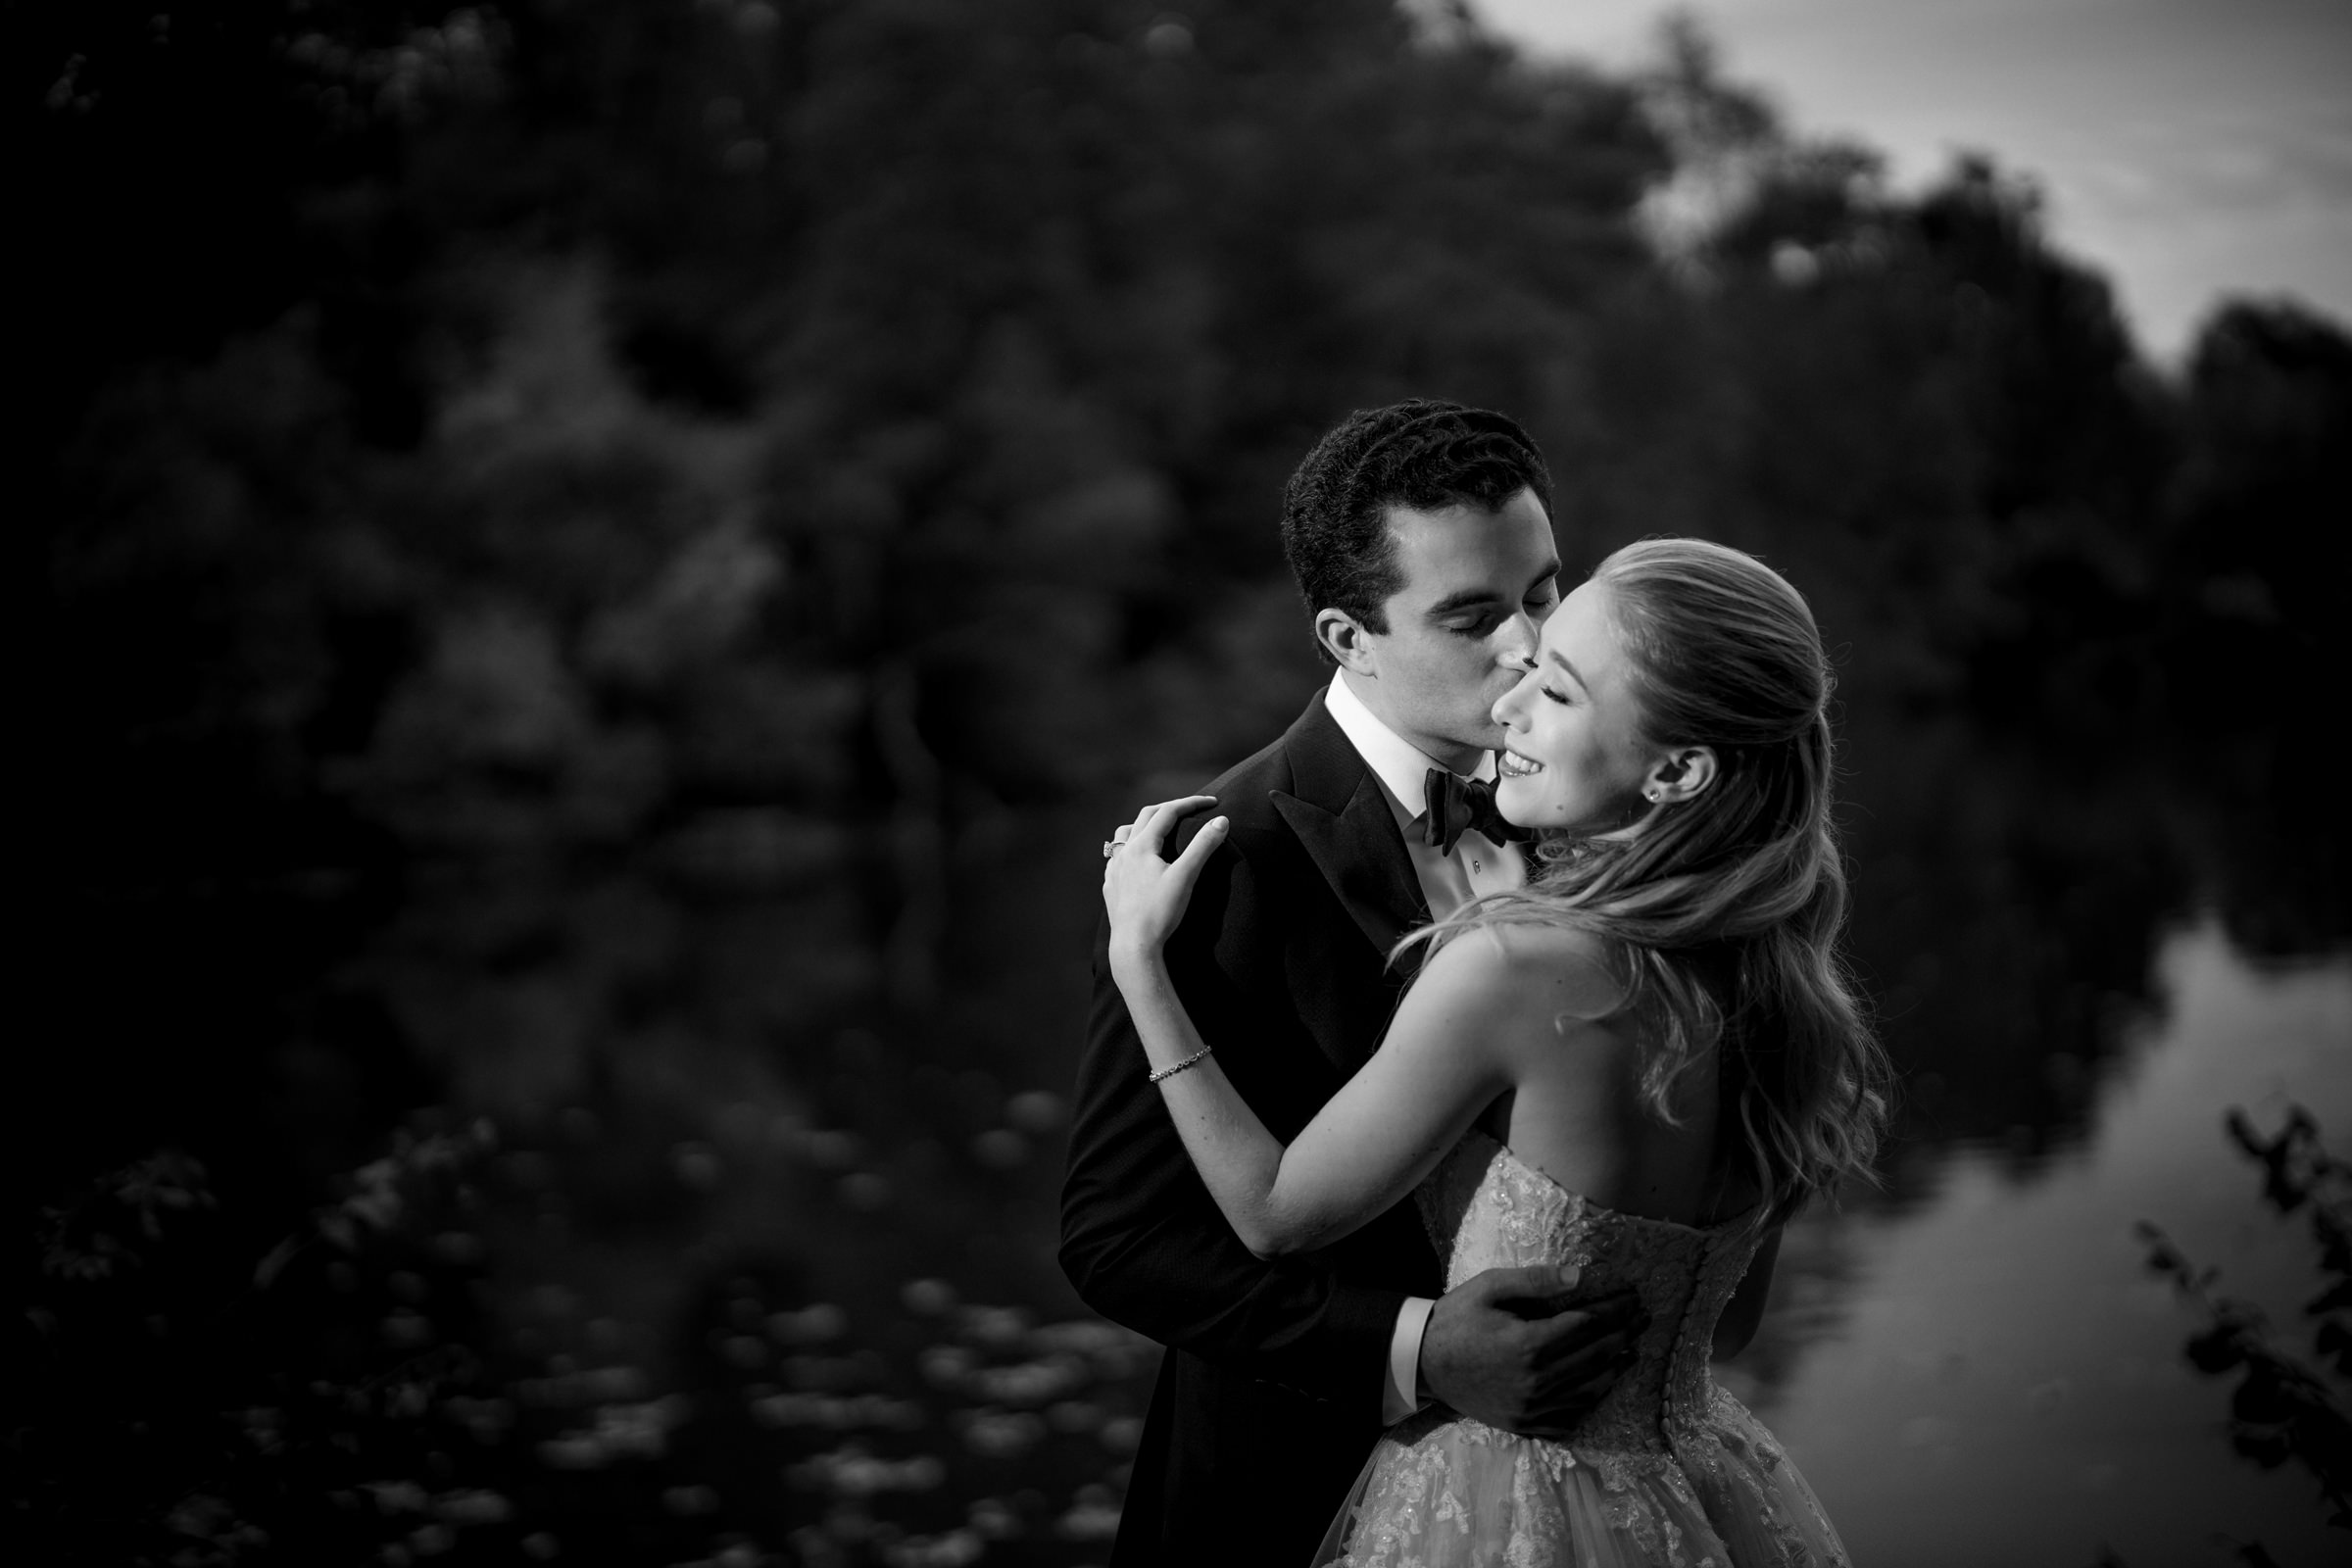 Romantic groom kisses bride on cheek - Photo by Susan Stripling Photography